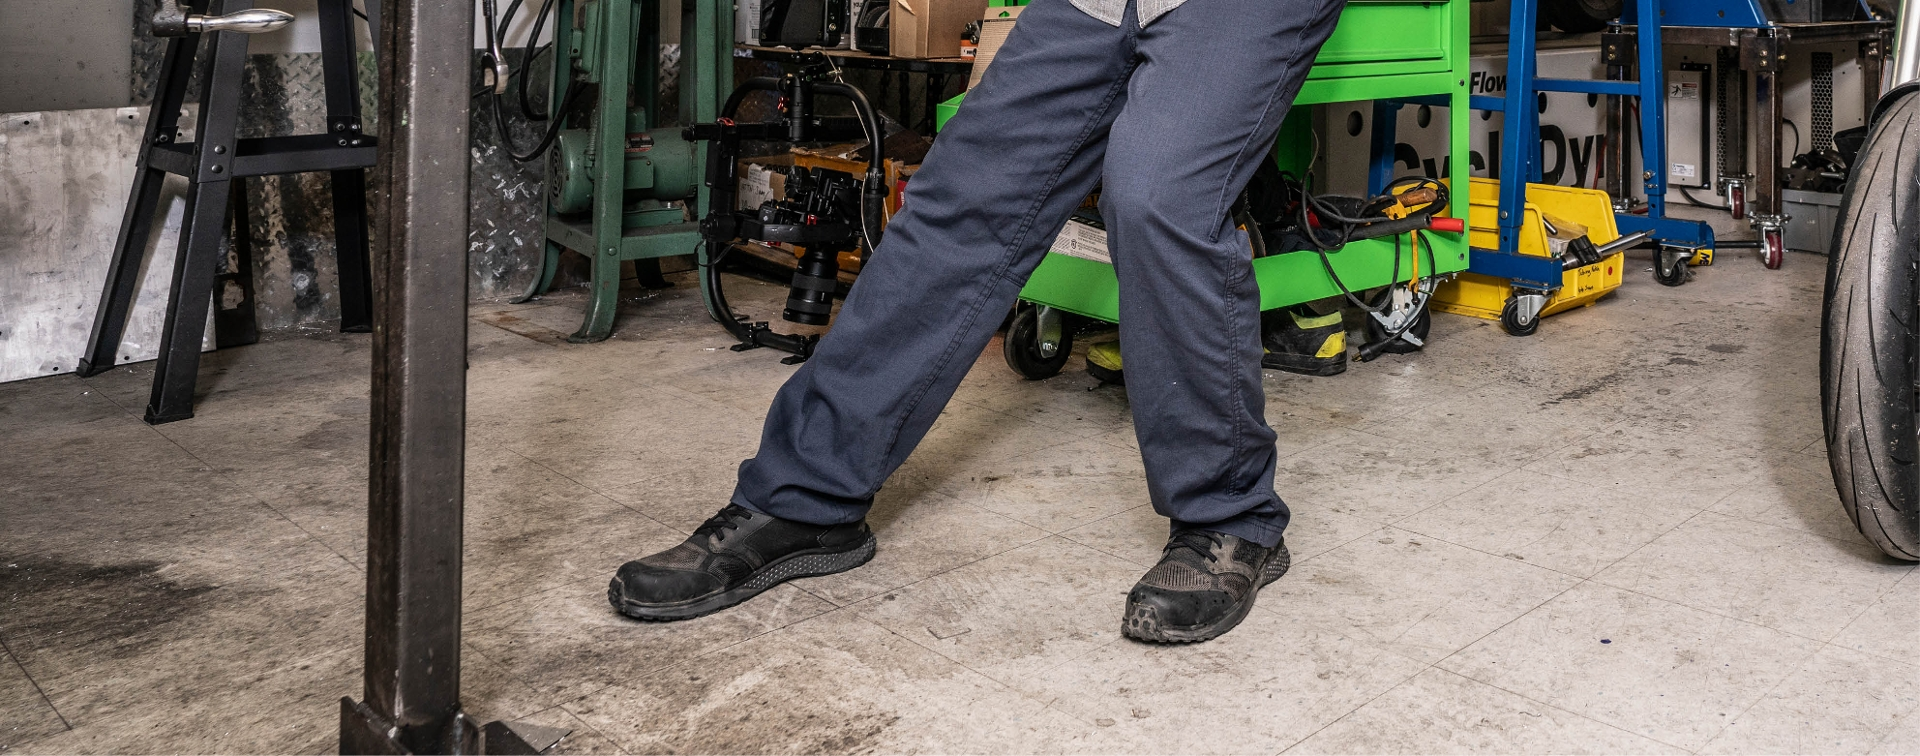 close up of guy working in a shop wearing black shoes